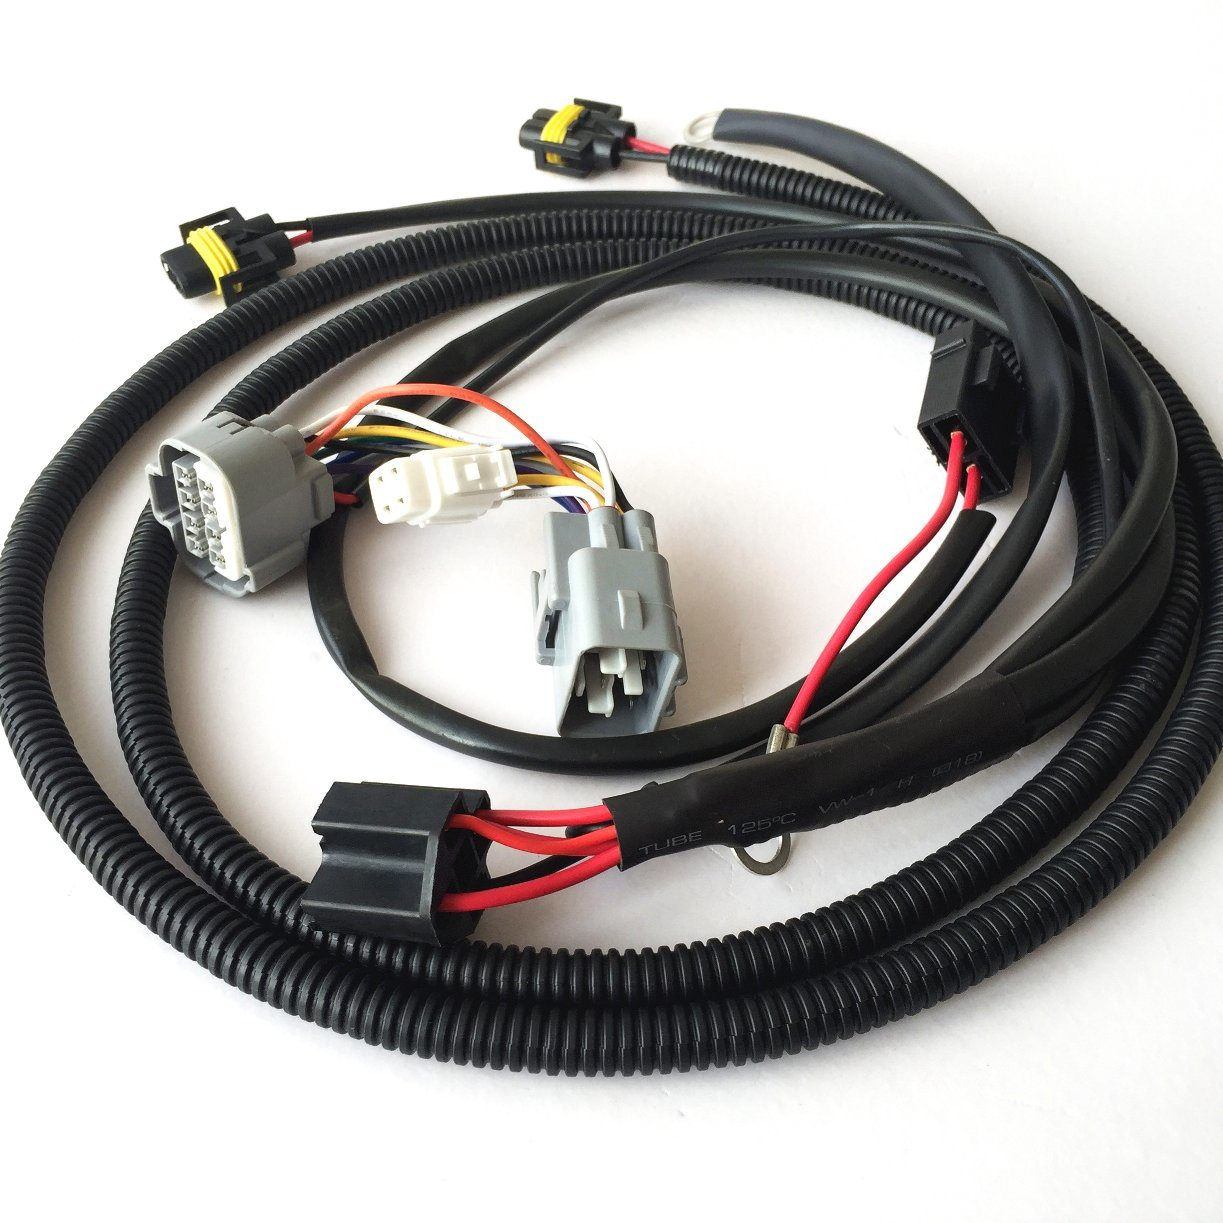 China Vehicle Line Bundle New Electric Car Wire Harness   China ...